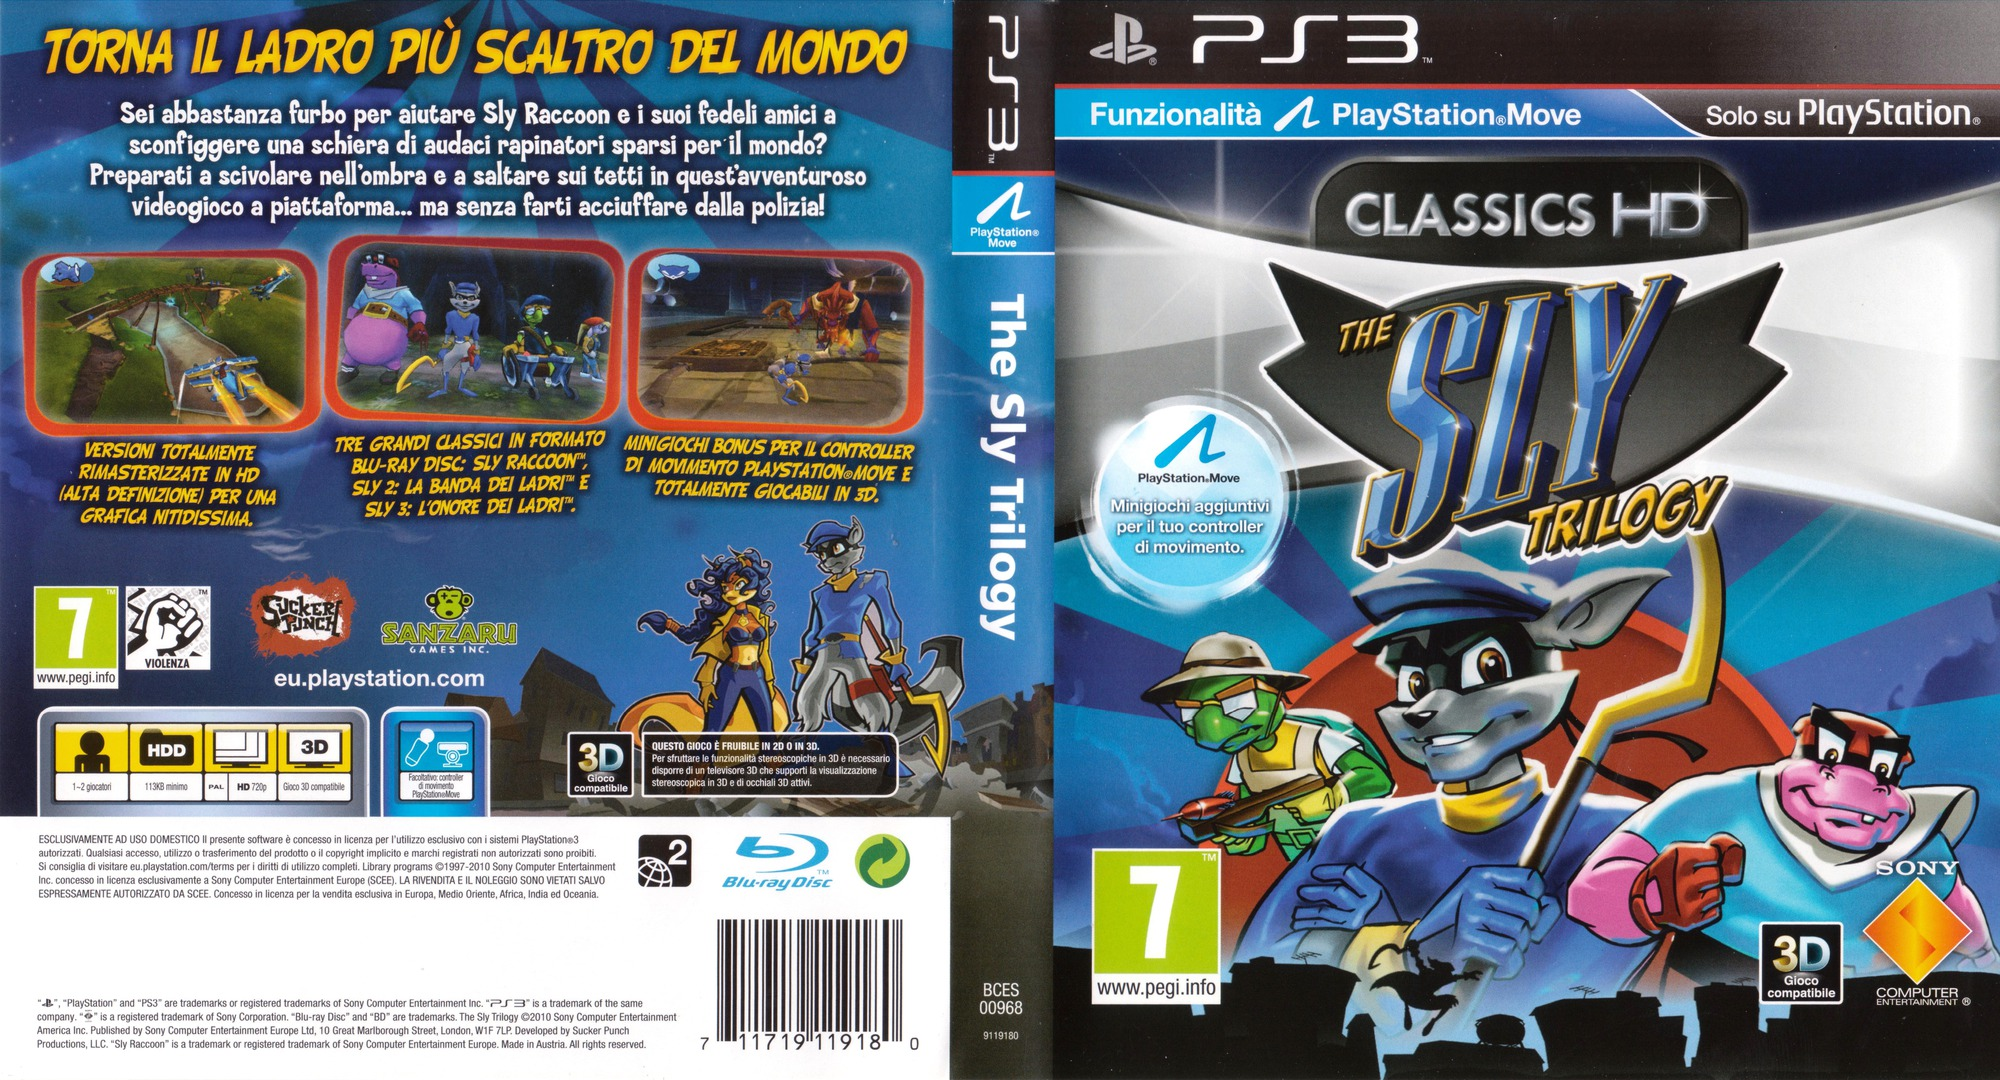 PS3 coverfullHQ (BCES00968)